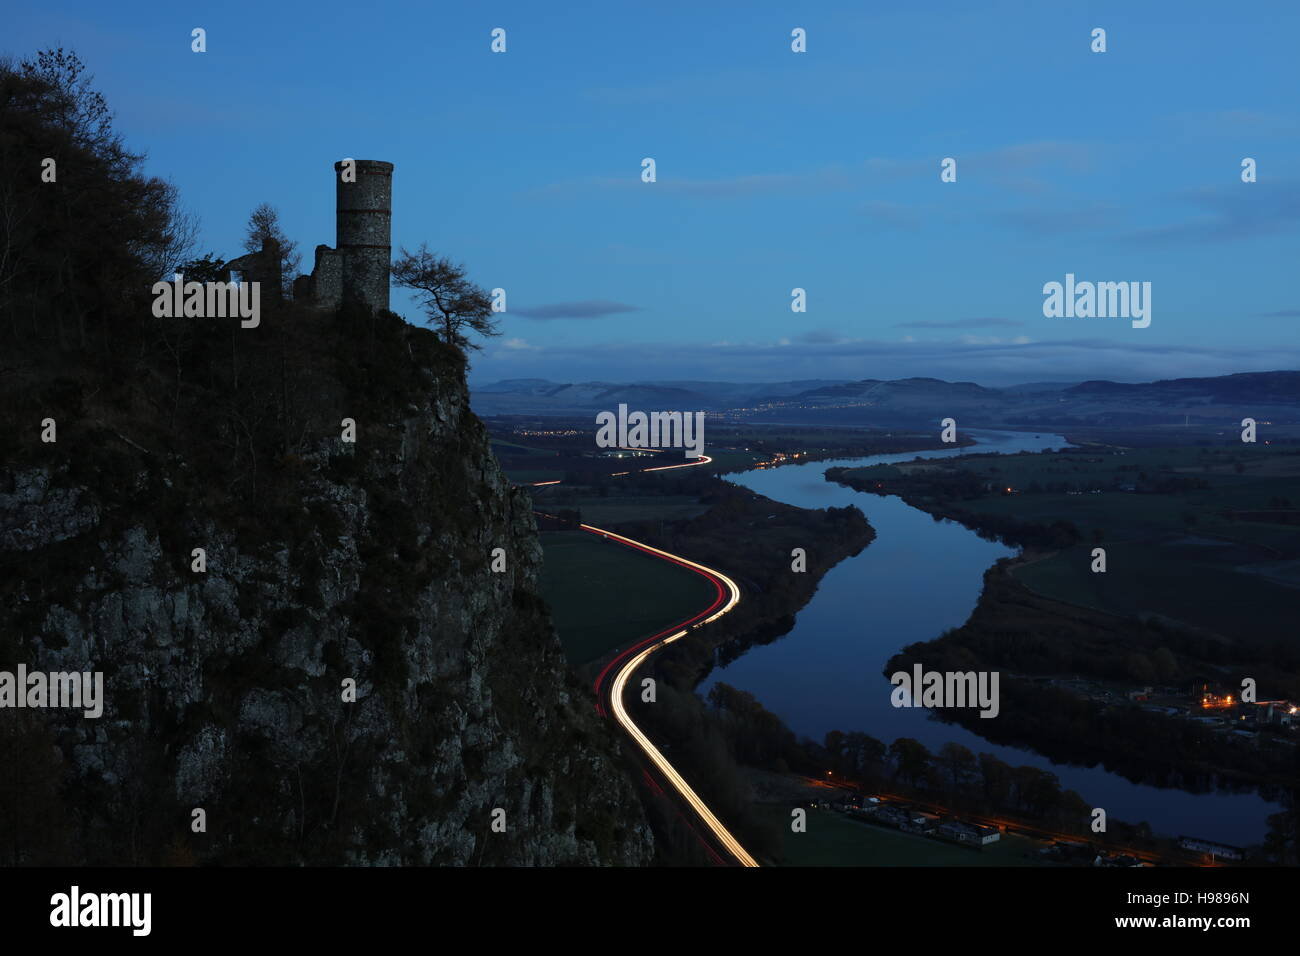 Night shot, Perth, Scotland, looking towards the River Tay, Glencarse and Dundee from Kinnoull Hil - Stock Image